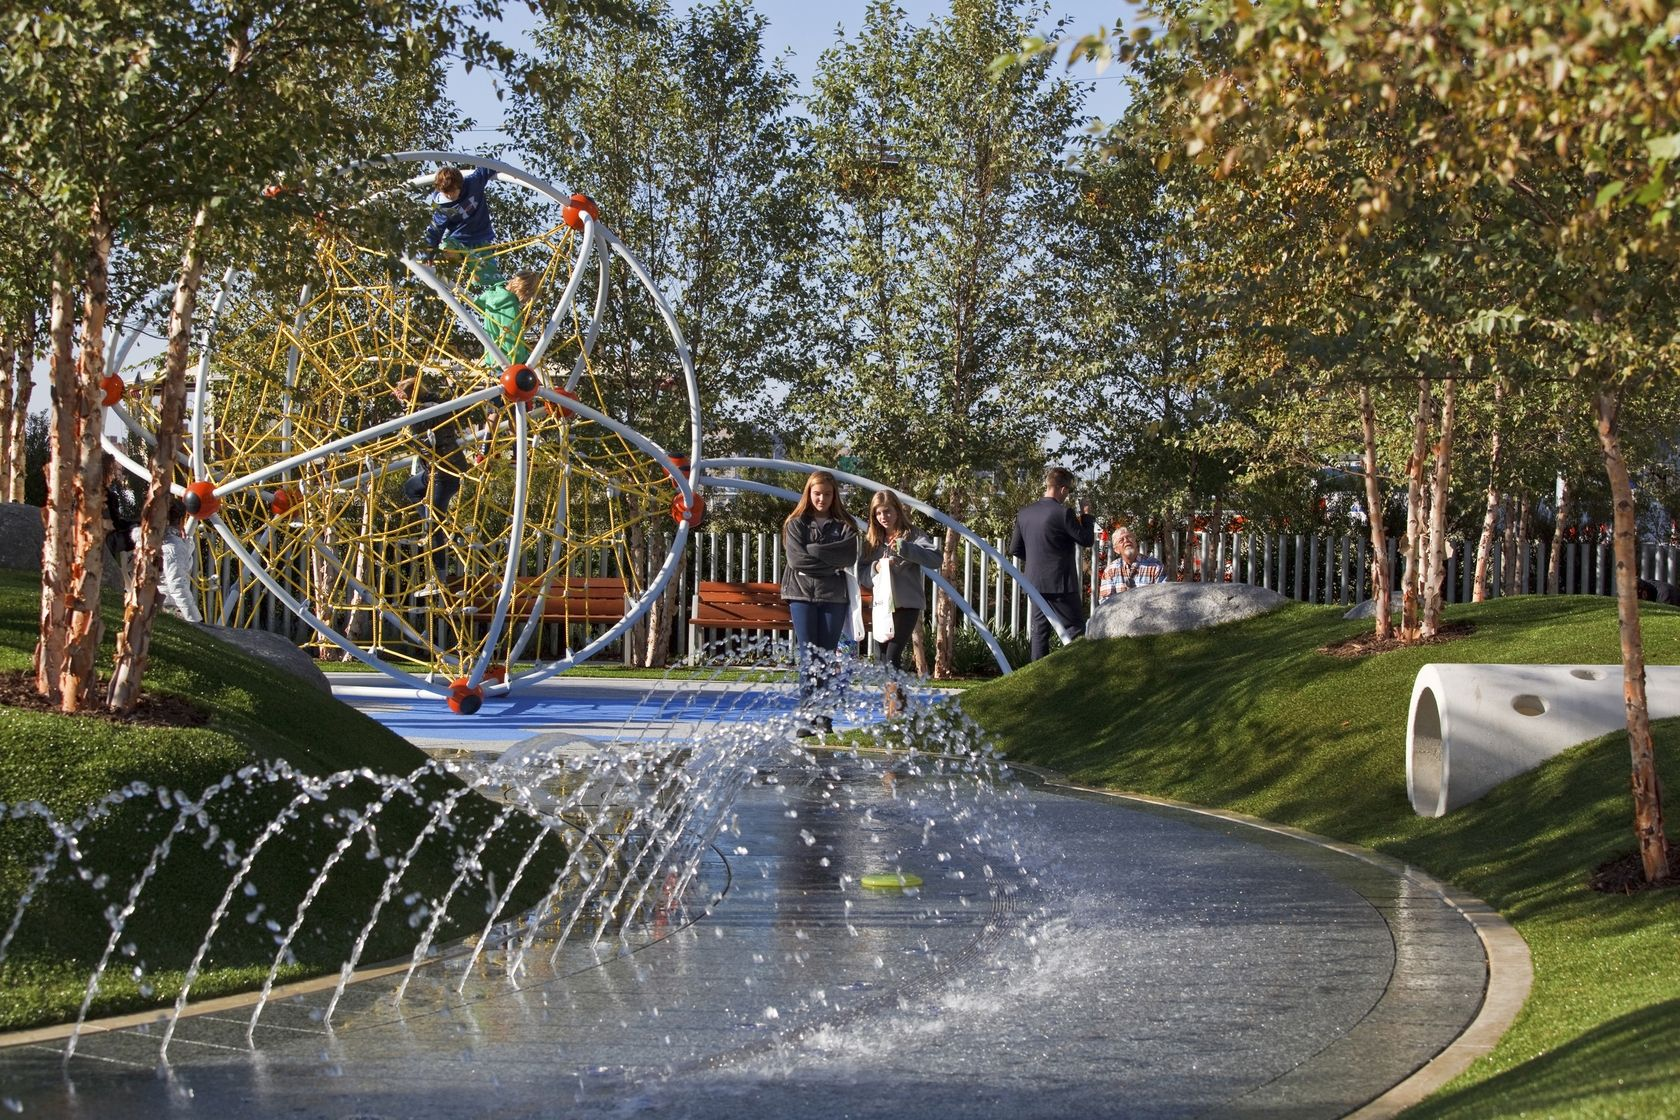 Ojb The Office Of James Burnett Water Playground Landscape Architecture Backyard Water Feature